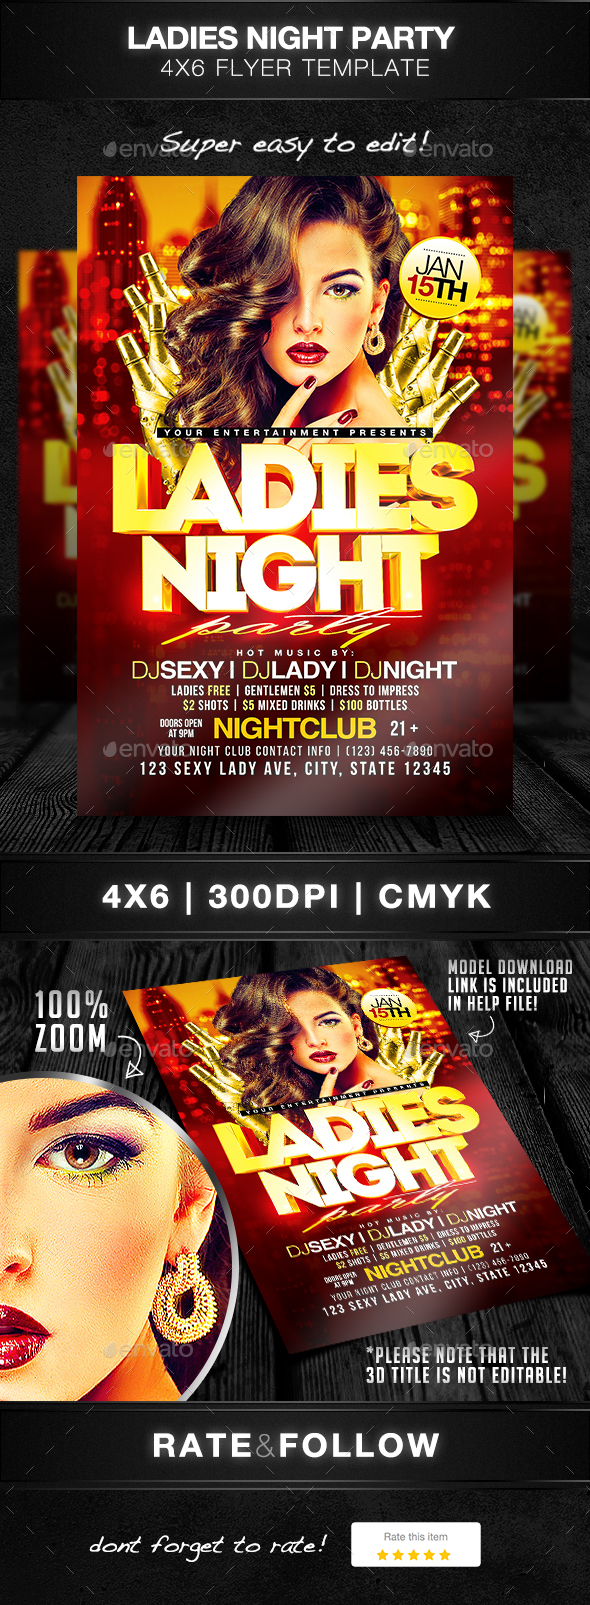 Ladies Night Party Flyer Template - Clubs & Parties Events